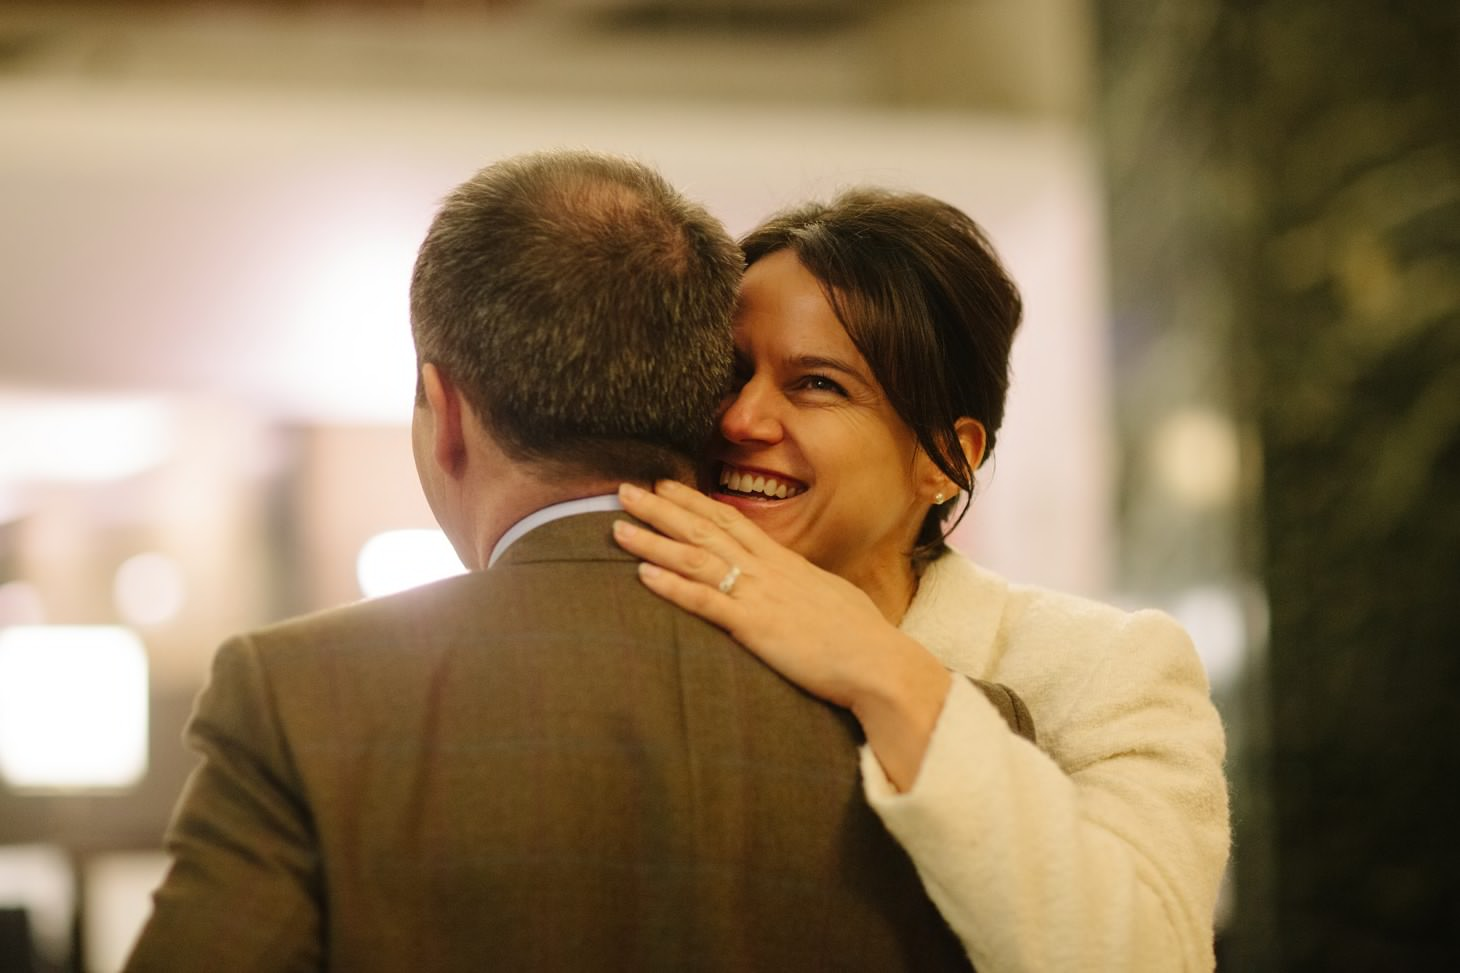 nyc-authentic-emotional-wedding-photography-elopement-smitten-chickens-photo9.jpg